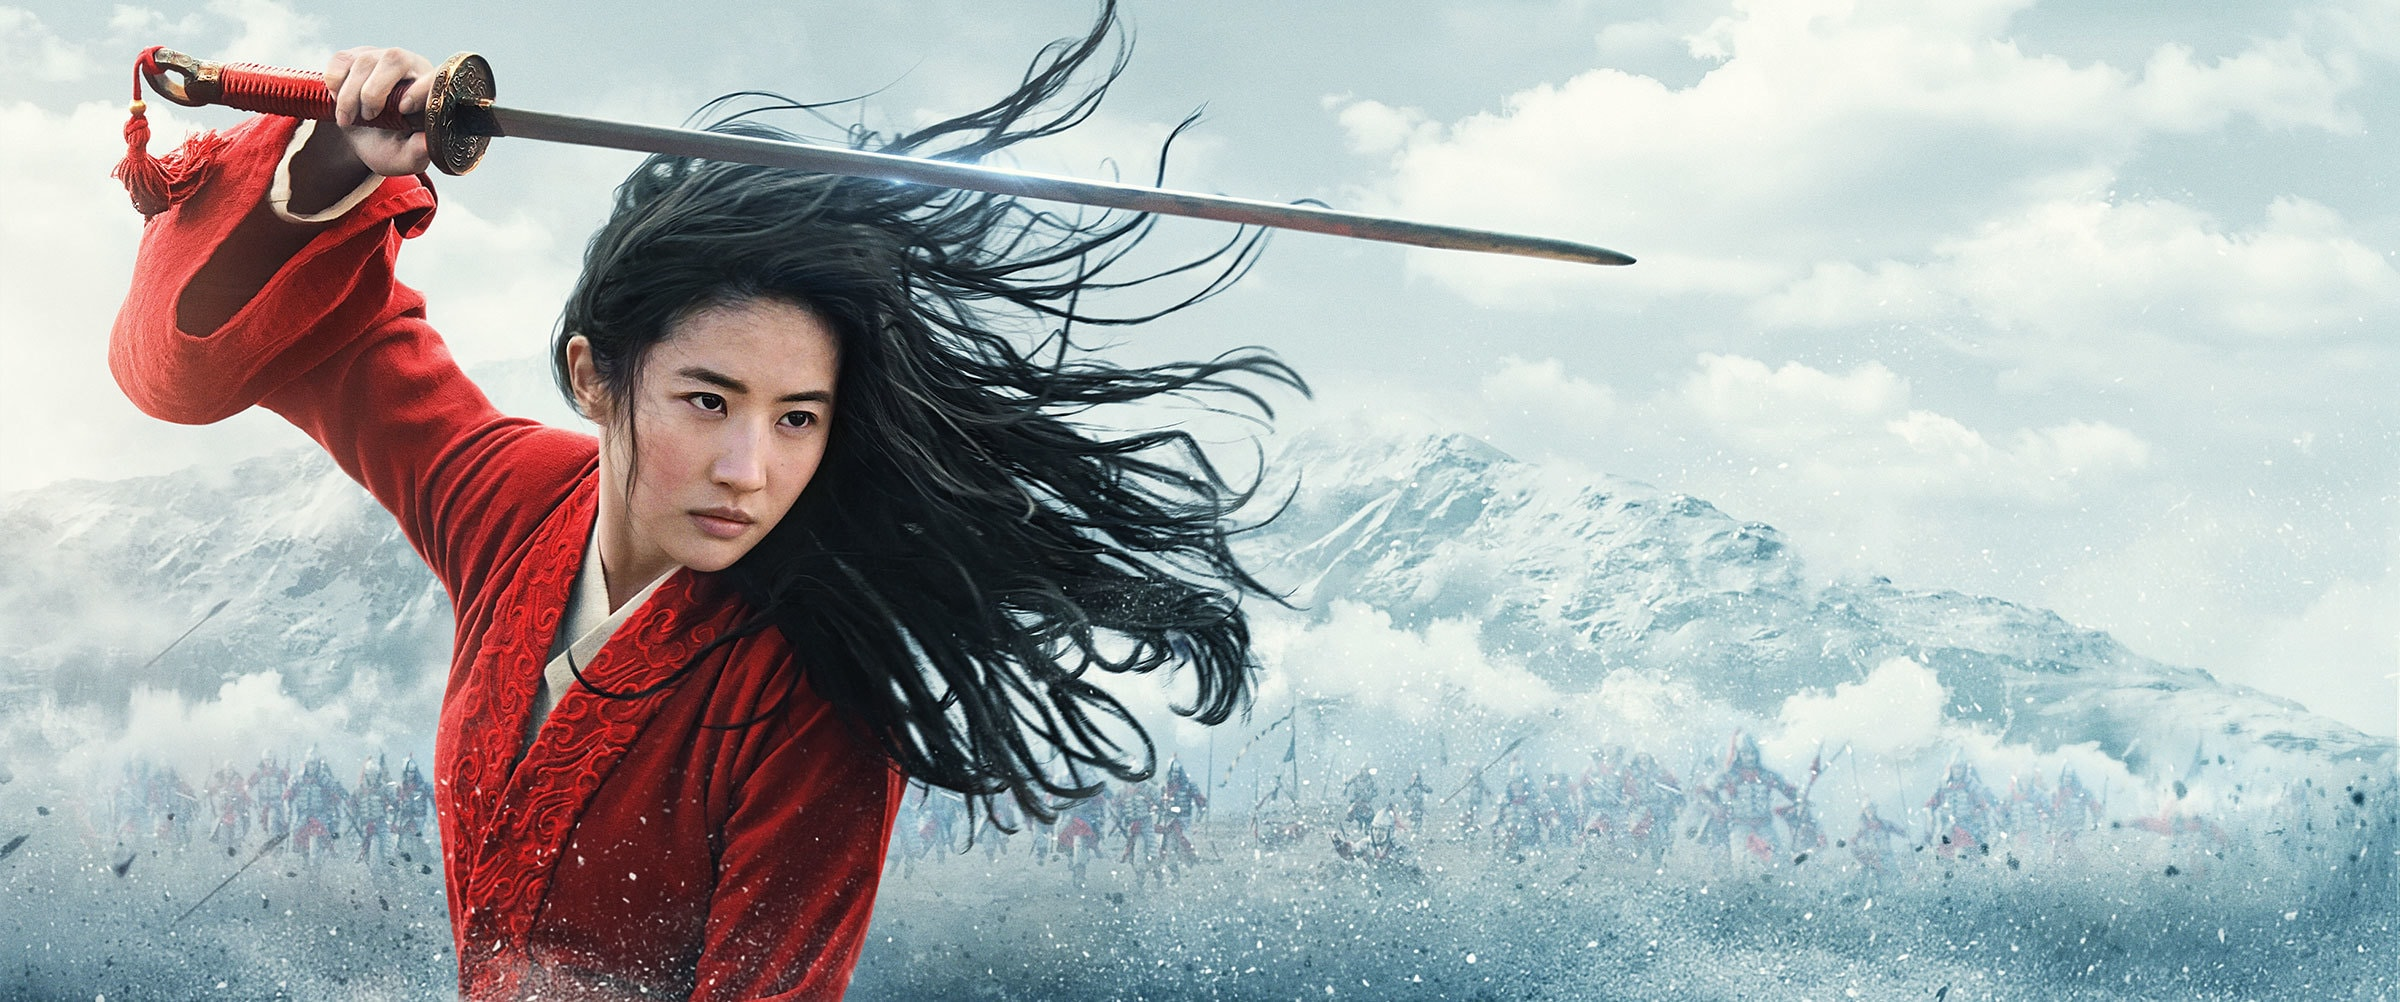 Mulan - Showcase hero - Mulan Poster